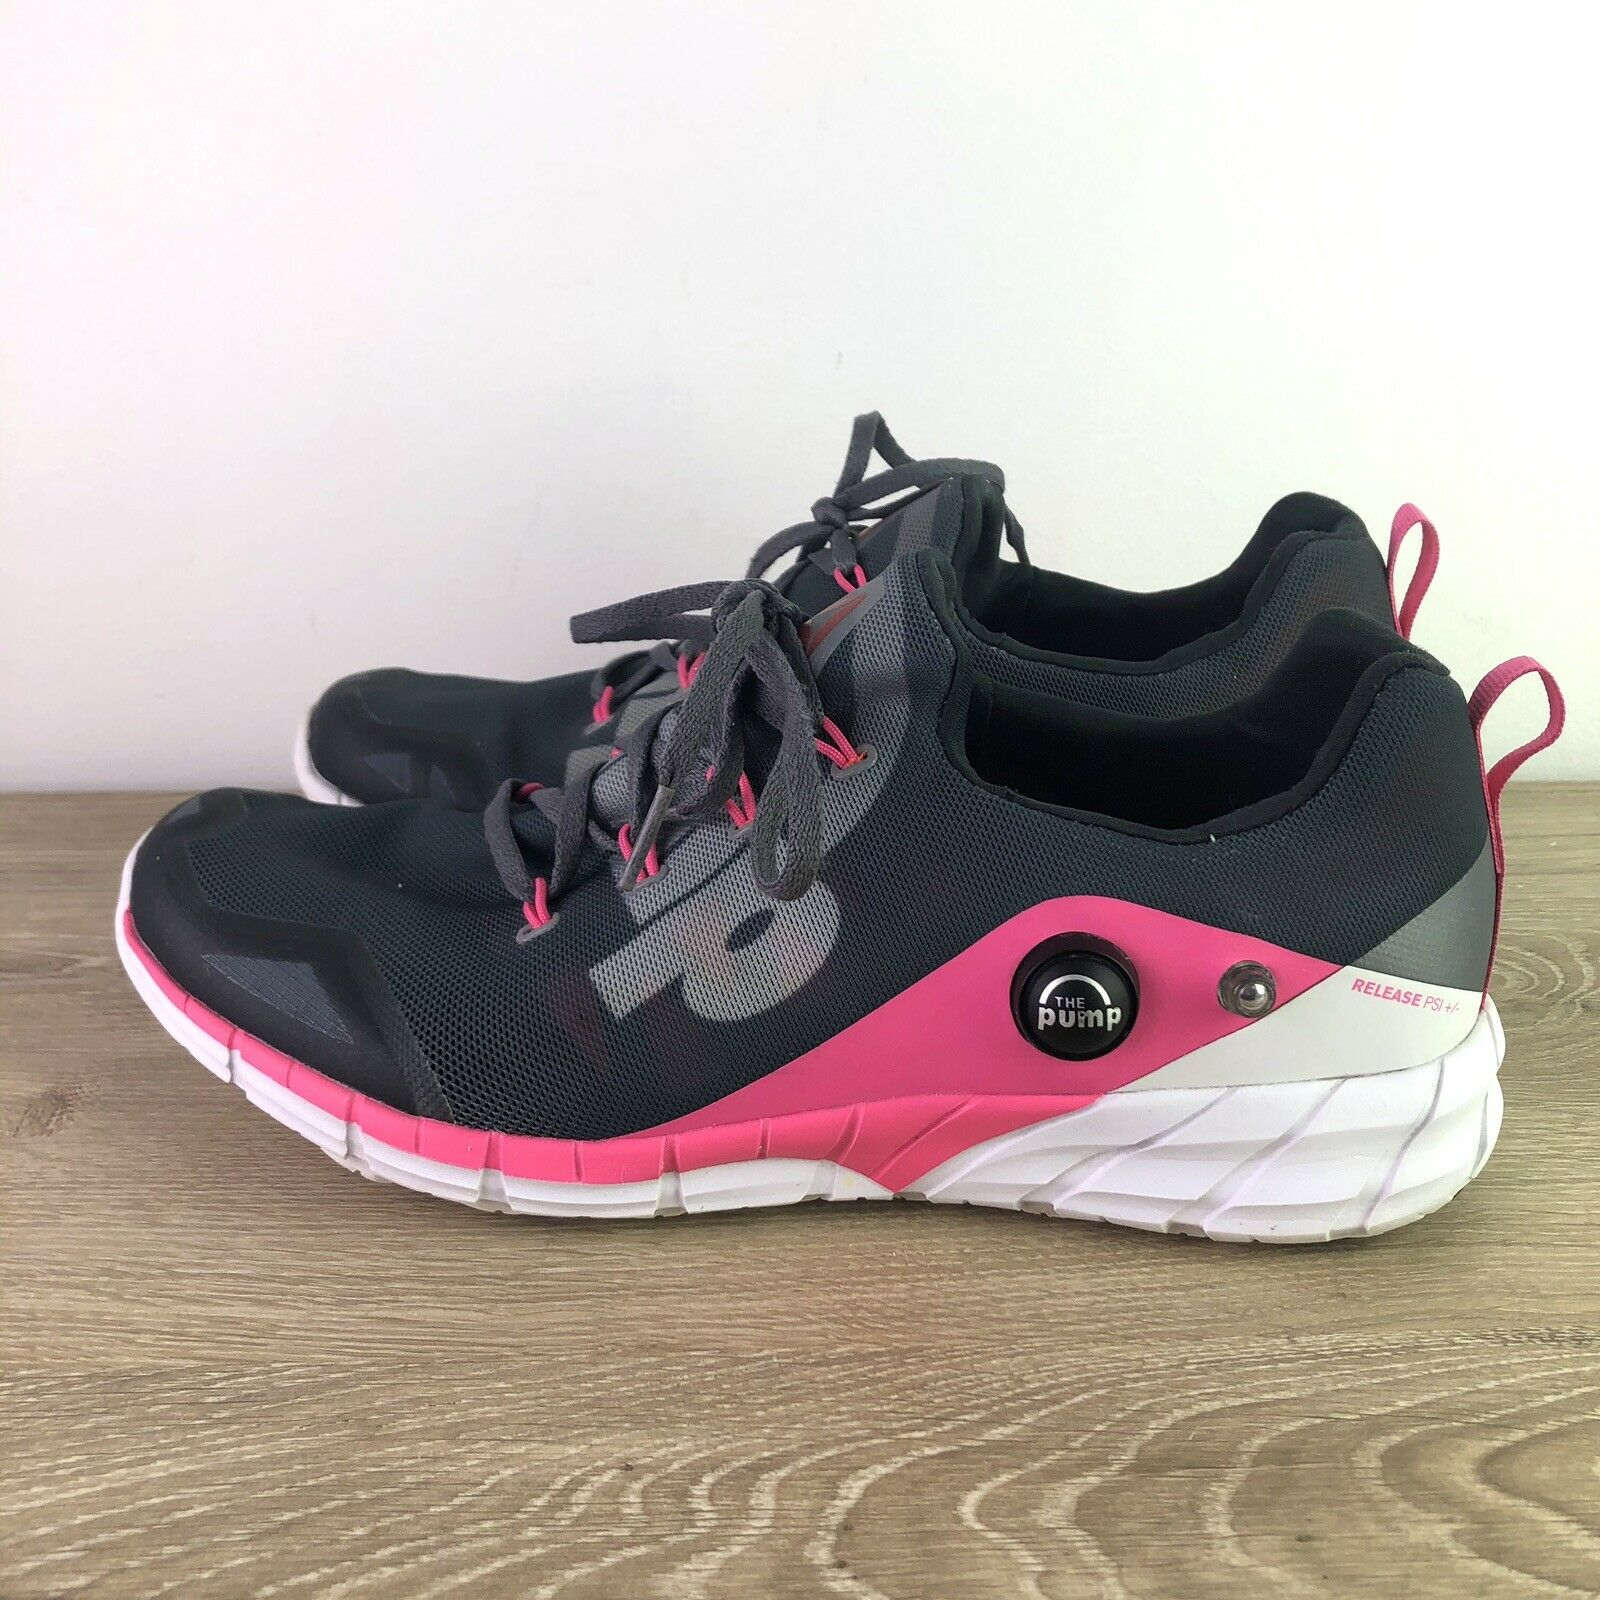 Reebok zpump Fusion 2.0 Gris Rose Femme Taille 10 Crossfit Course Gym Chaussures